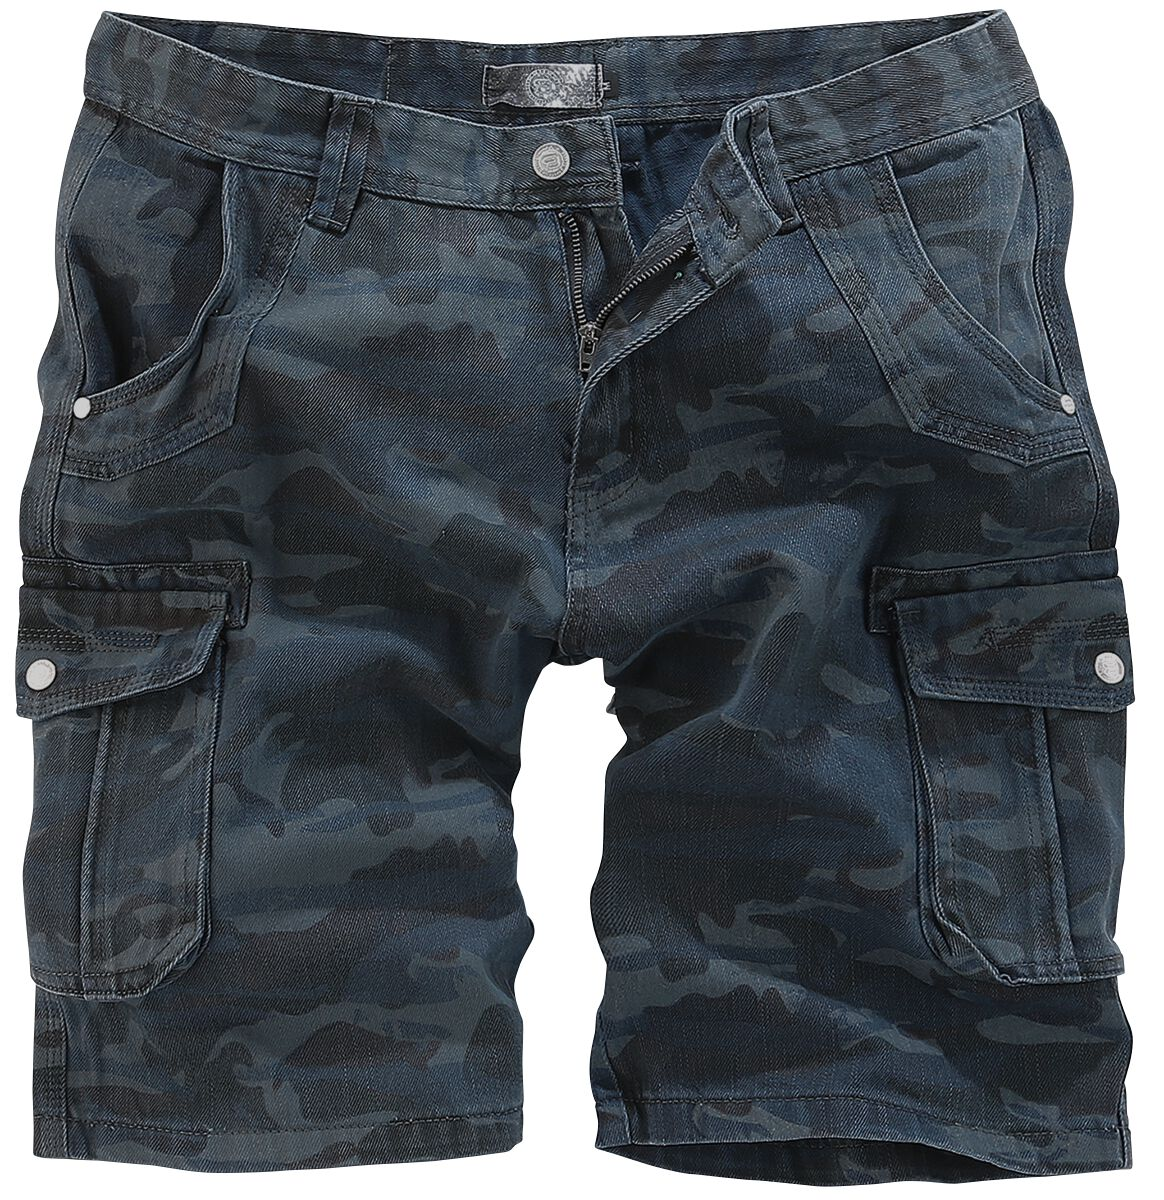 Image of   RED by EMP Army Vintage Shorts Shorts camouflage